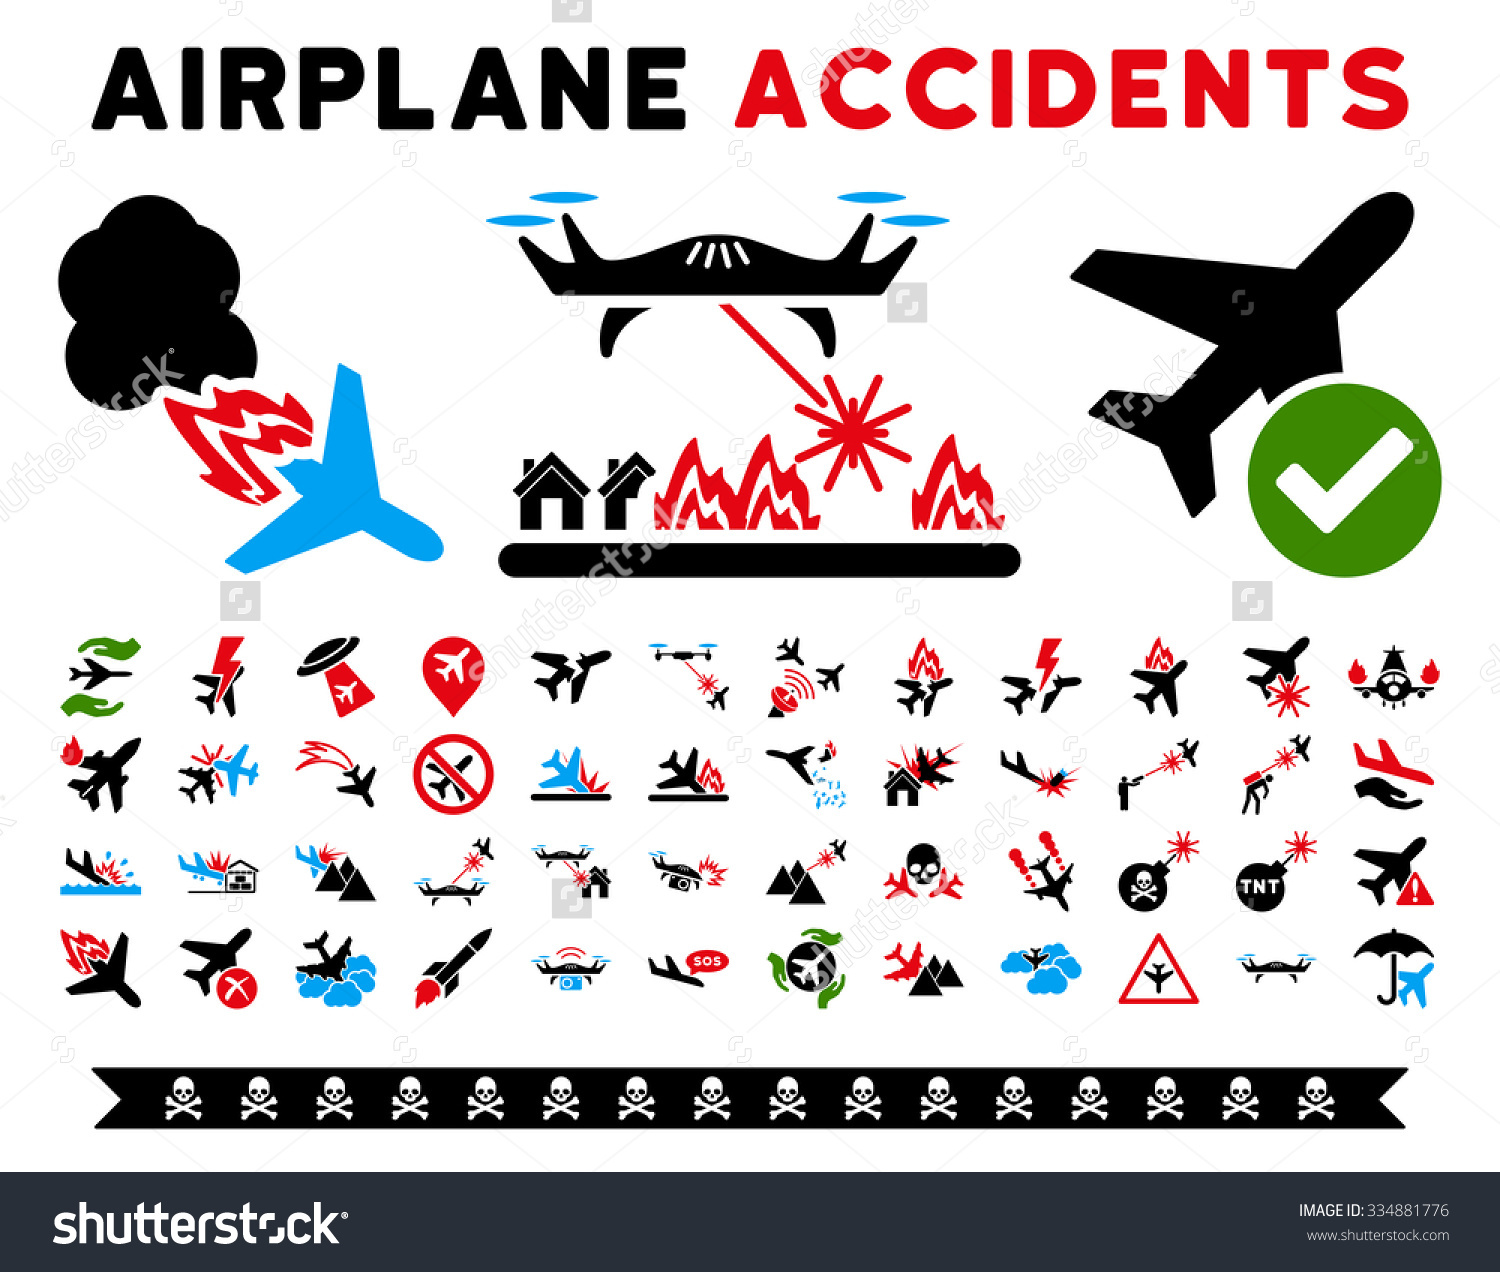 Aircraft Accidents Vector Icon Clipart Here Stock Vector 334881776.